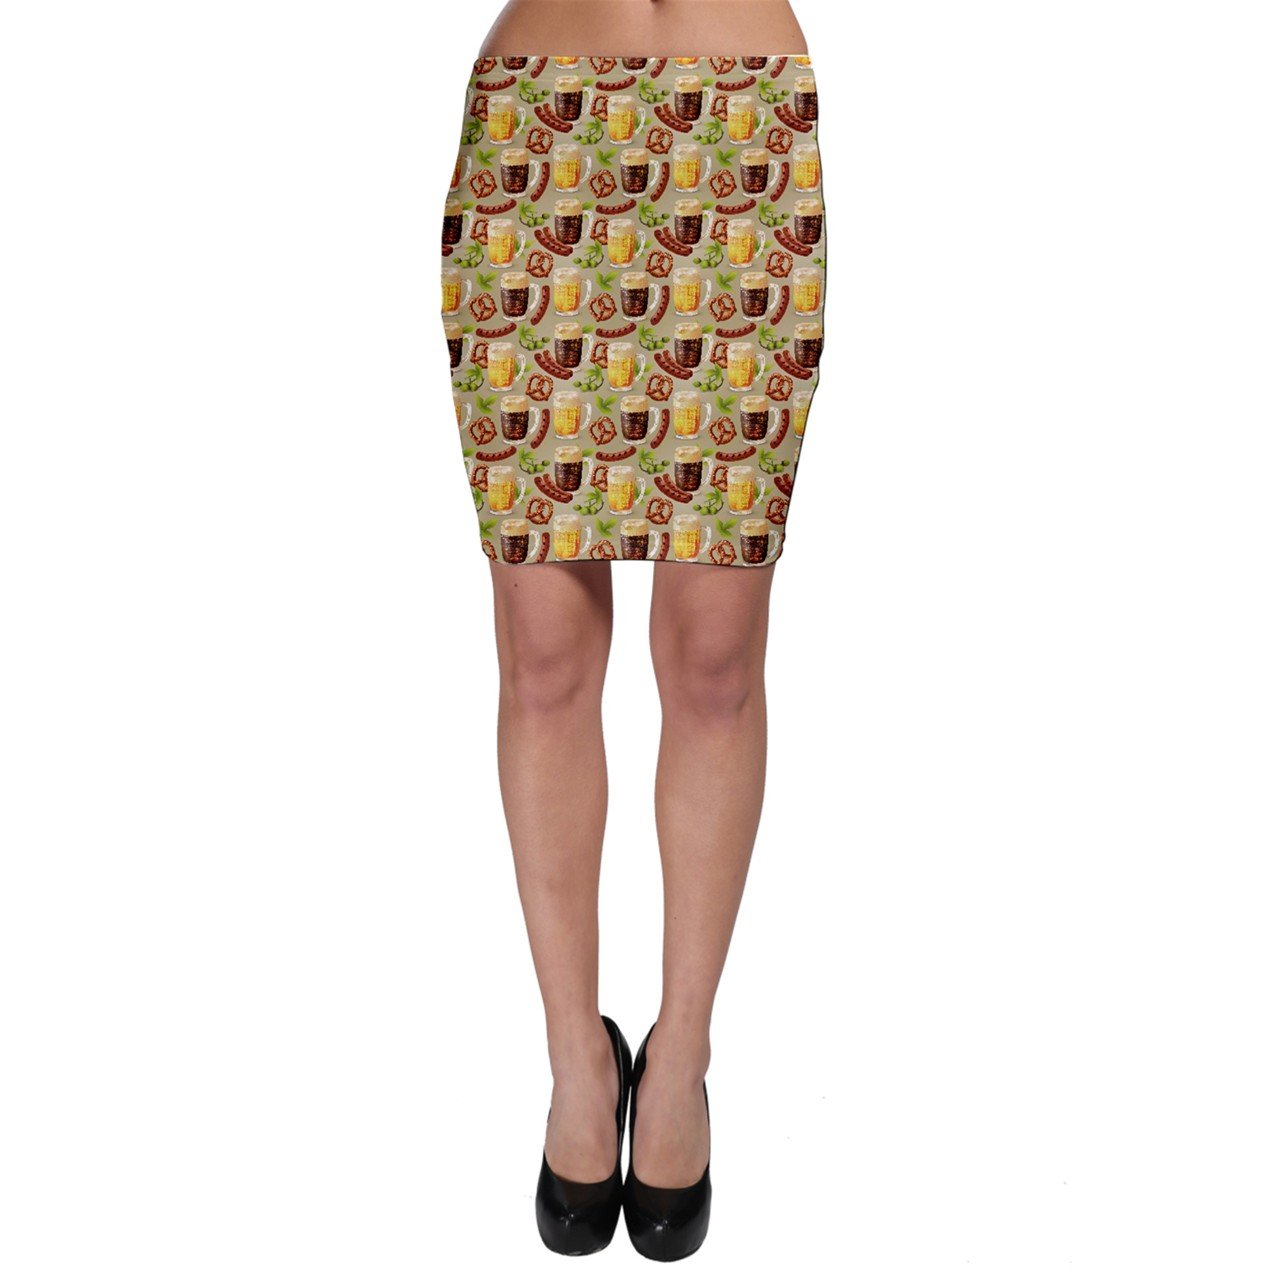 CowCow Colorful Glass Mugs Lager Dark Beer Hop Pretzel Sausage Pattern Bodycon Skirt